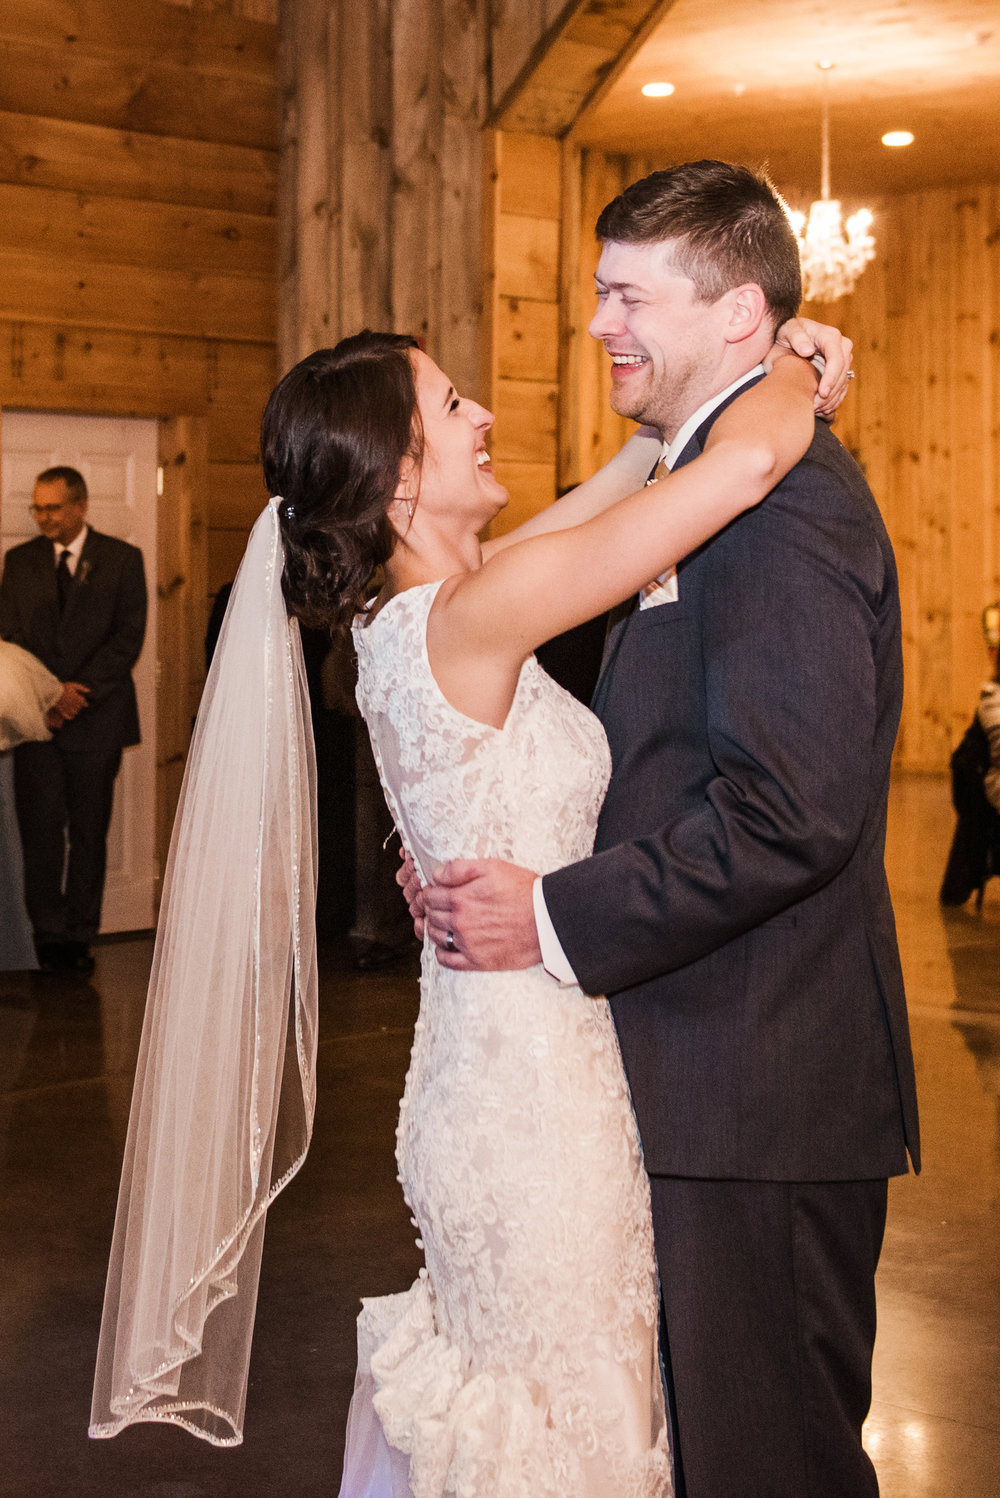 Wolf_Oak_Acres_Central_NY_Wedding_JILL_STUDIO_Rochester_NY_Photographer_DSC_7635.jpg